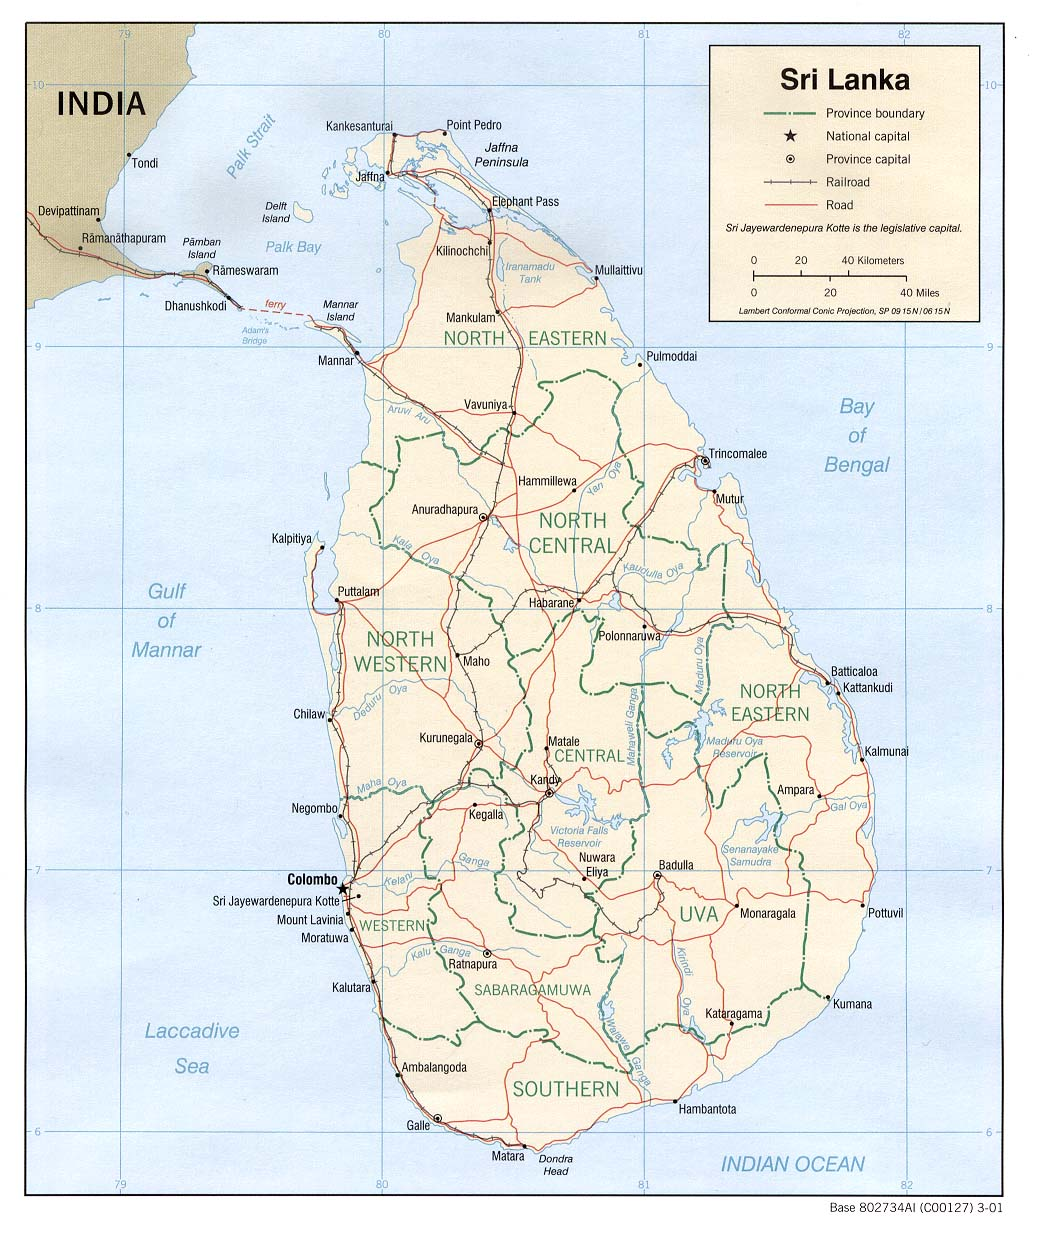 Download Free Sri Lanka Maps on political map of crimea, political map of maldives, political map of cayman islands, political map of western sahara, political map of marshall islands, political map of the ivory coast, political map of the arabian sea, political map of indus river, political map of the british isles, political map of the soviet union, political map of republic of congo, political map of réunion, political map of arab countries, political map of cyprus, political map of malaysia, political map of montserrat, political map of west bank, political map of southeast europe, political map of mekong river, political map of u s a,